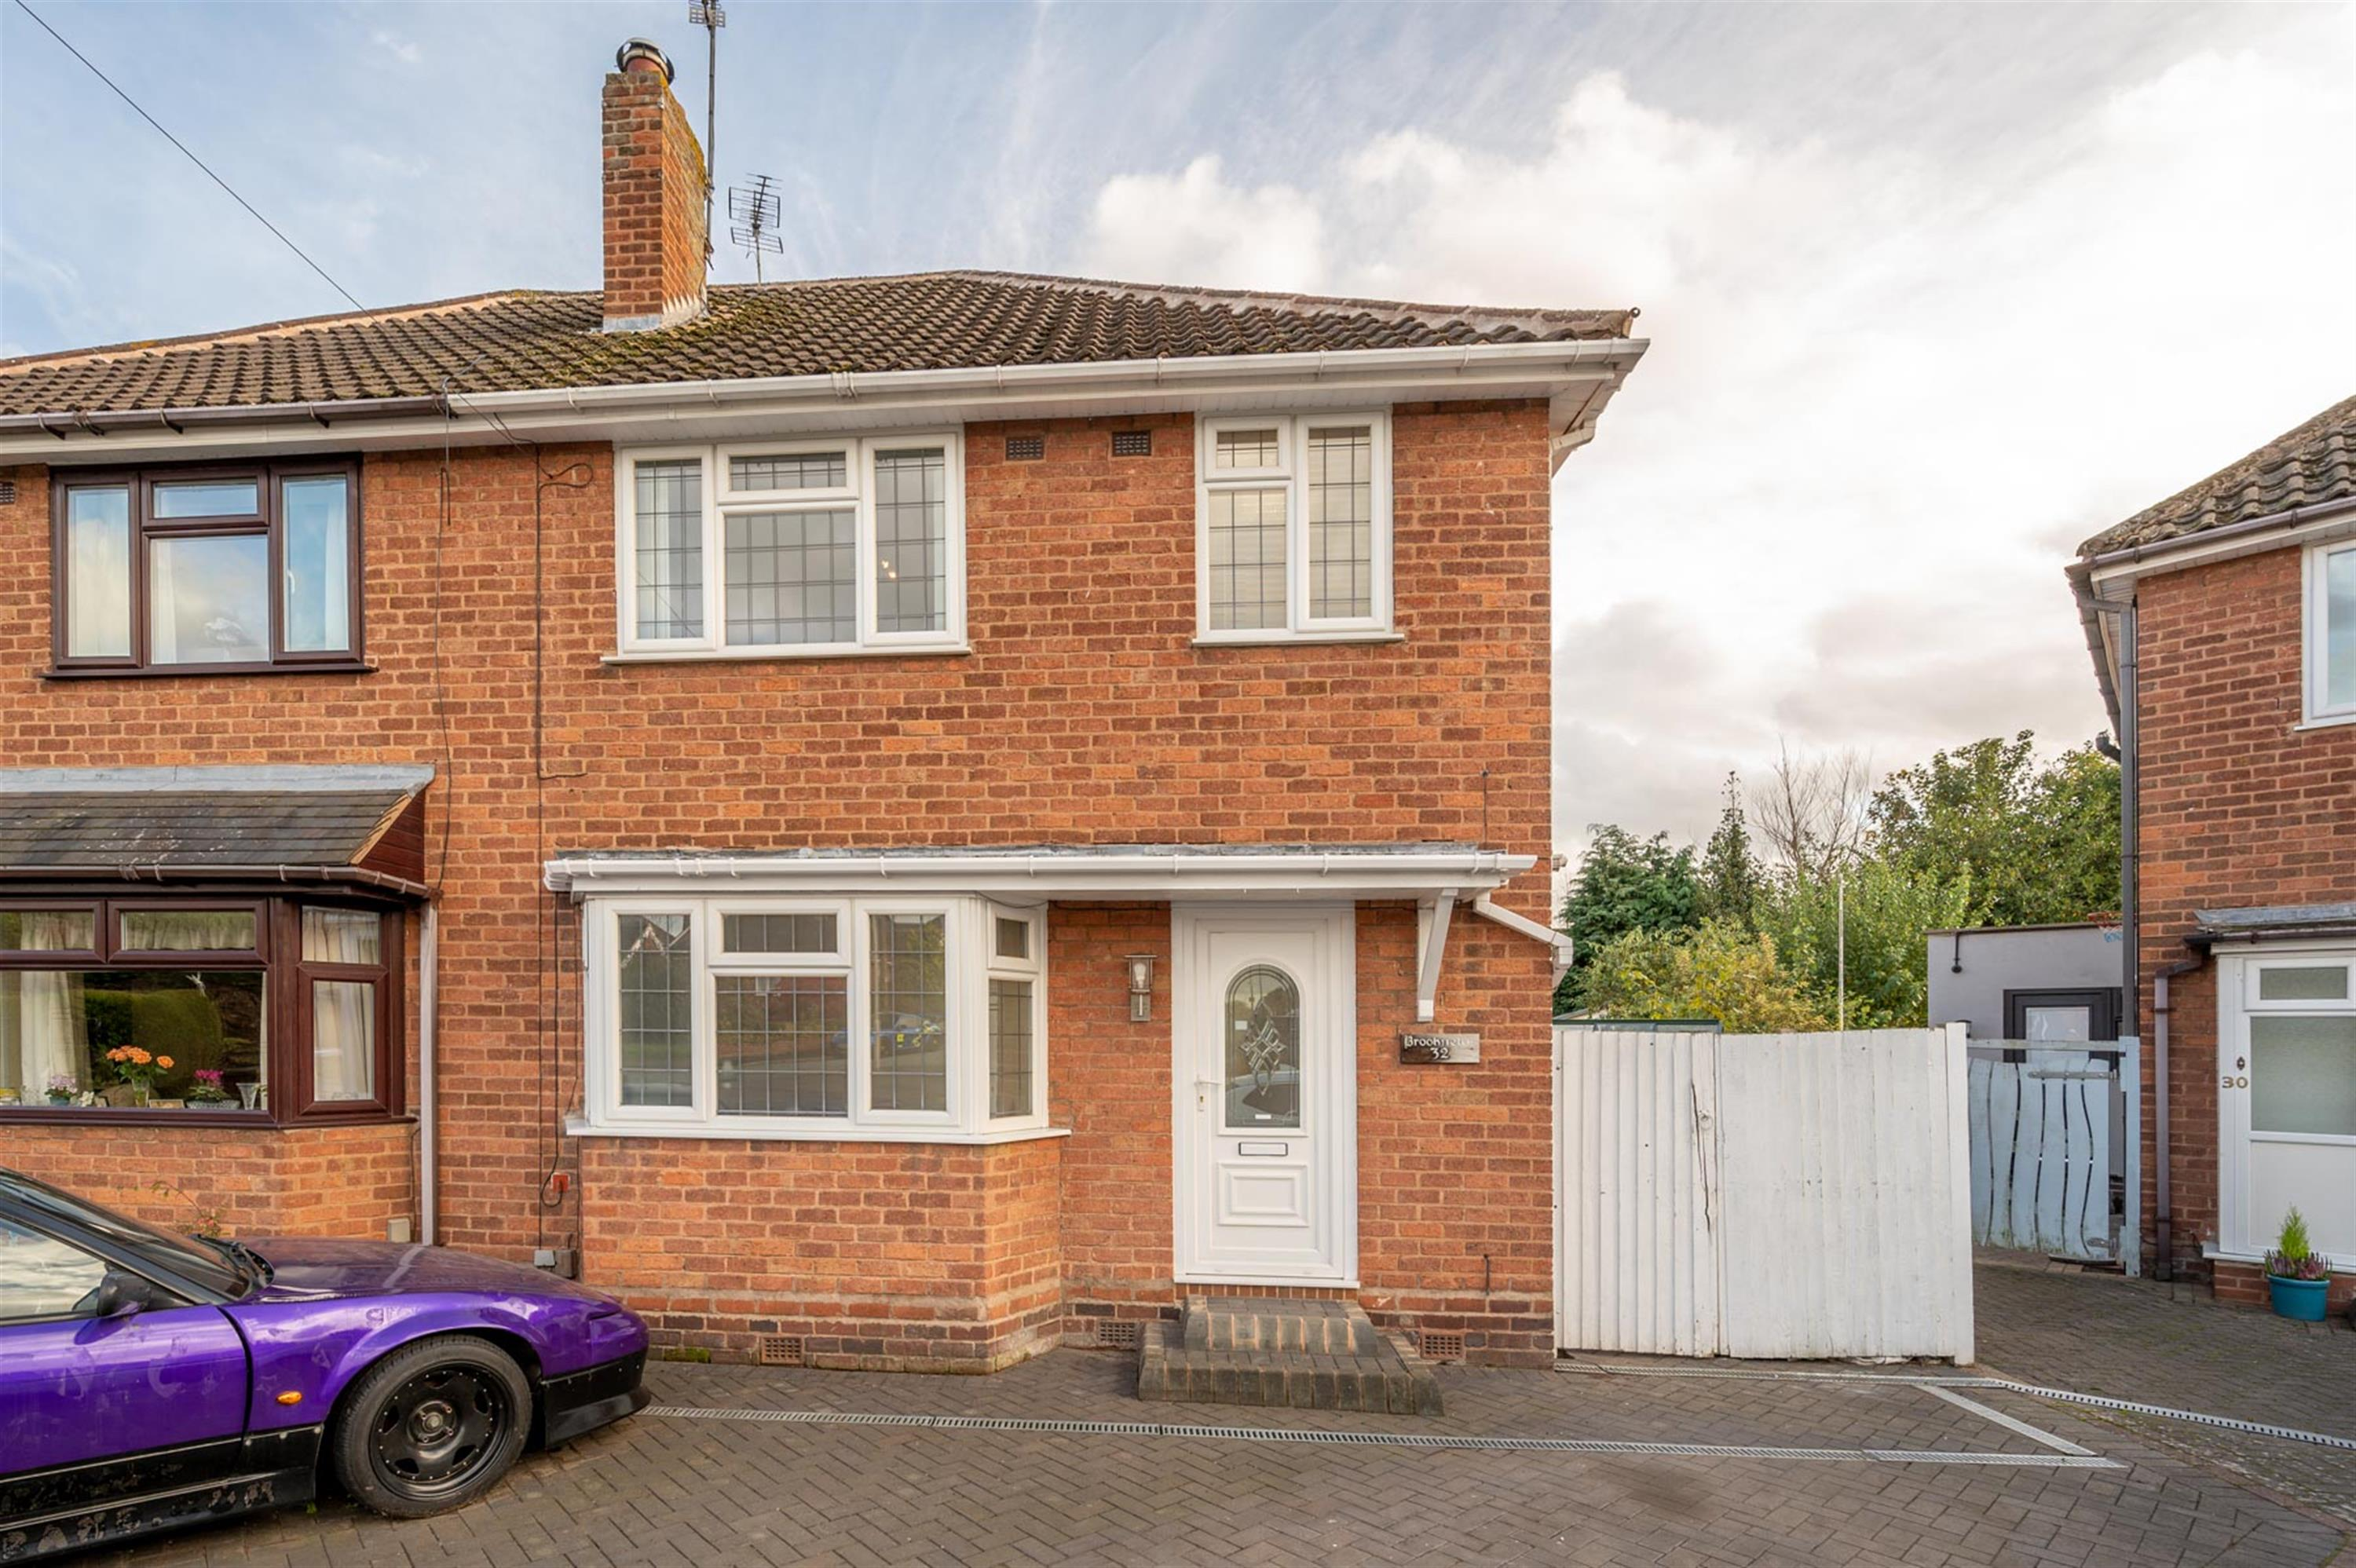 Summerfield Avenue, Wall Heath, DY6 9AR